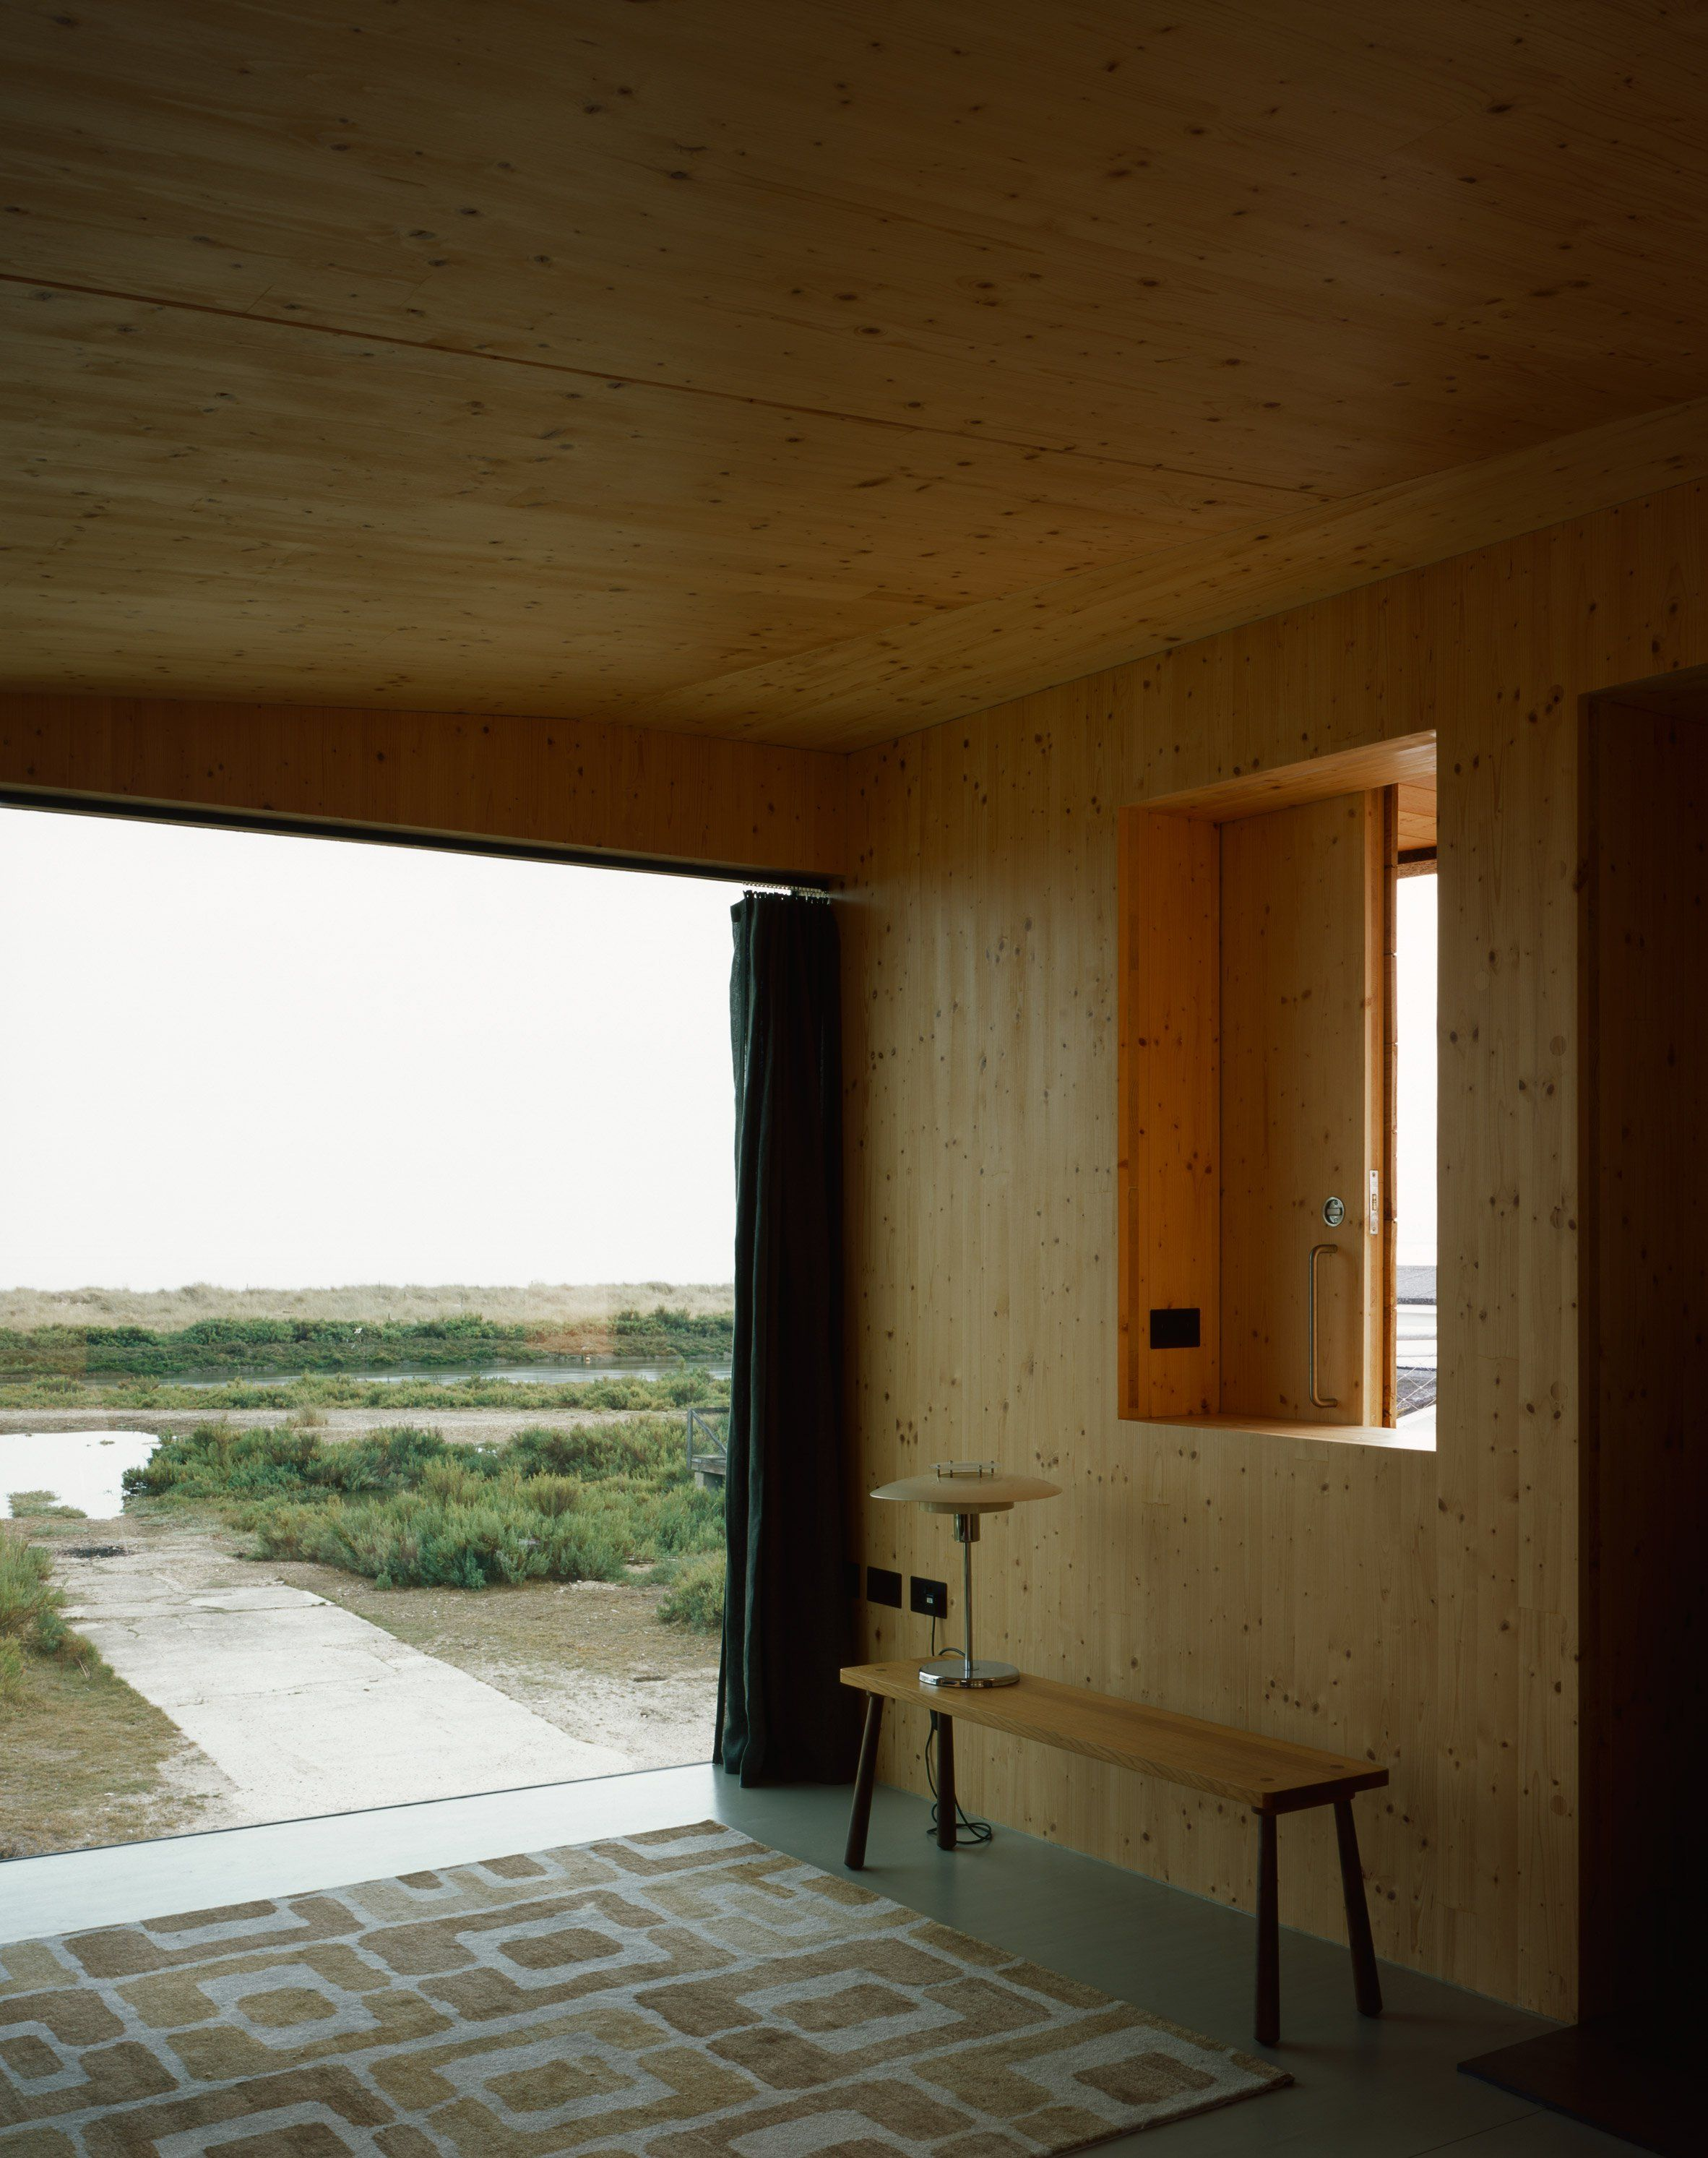 lisa shell designs artists studio as a cork clad cabin raised above a marsh